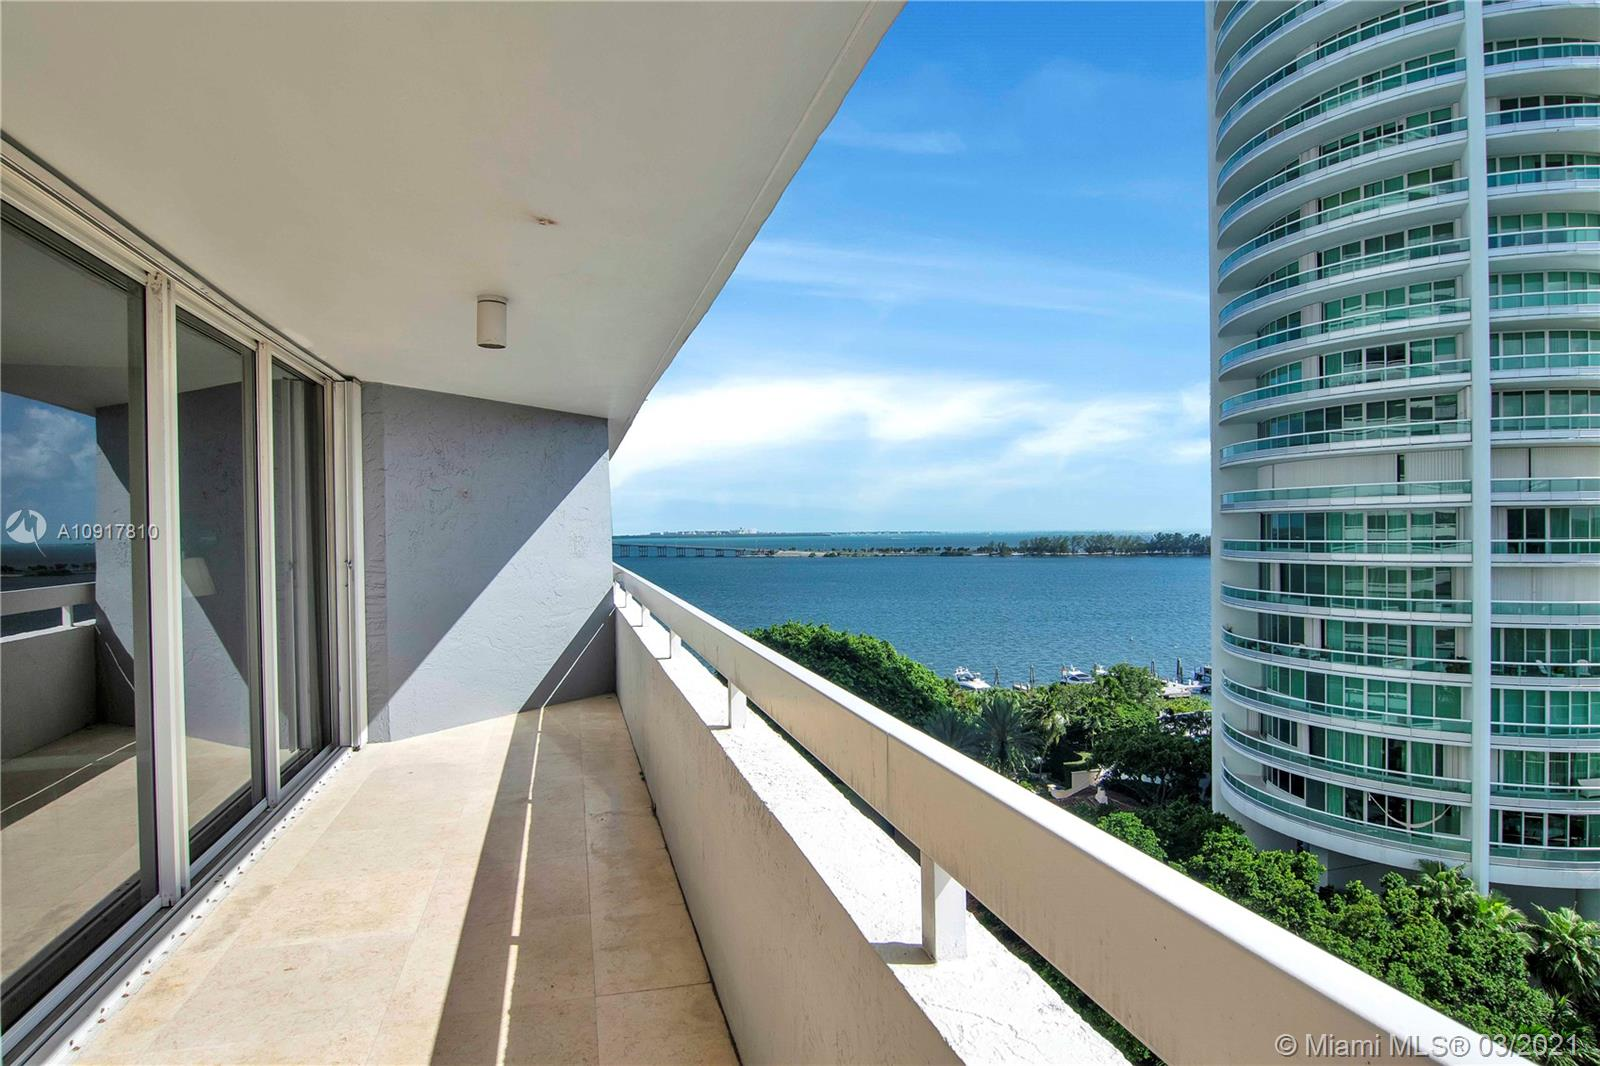 Contemporary design with style & sophistication. completely remodeled. spacious layout. over 600sq.ft. wraparound balcony w/spectacular panoramic city & bay views to enjoy the Miami sunrise/sunset. Floor to ceiling glass sliding doors provide balcony access & views from all rooms. Marble floors in living/dining areas & throughout balcony. Carpet floors in all bedrooms. surround sound w/Bose pre-wire speakers in kitchen, master & living, home theater in 3rd bedroom & wine cooler included in the sale. Amenities include a tennis court, swimming pool, jacuzzi, BBQ area by the bay, gym, concierge, convenience store, party room, valet.